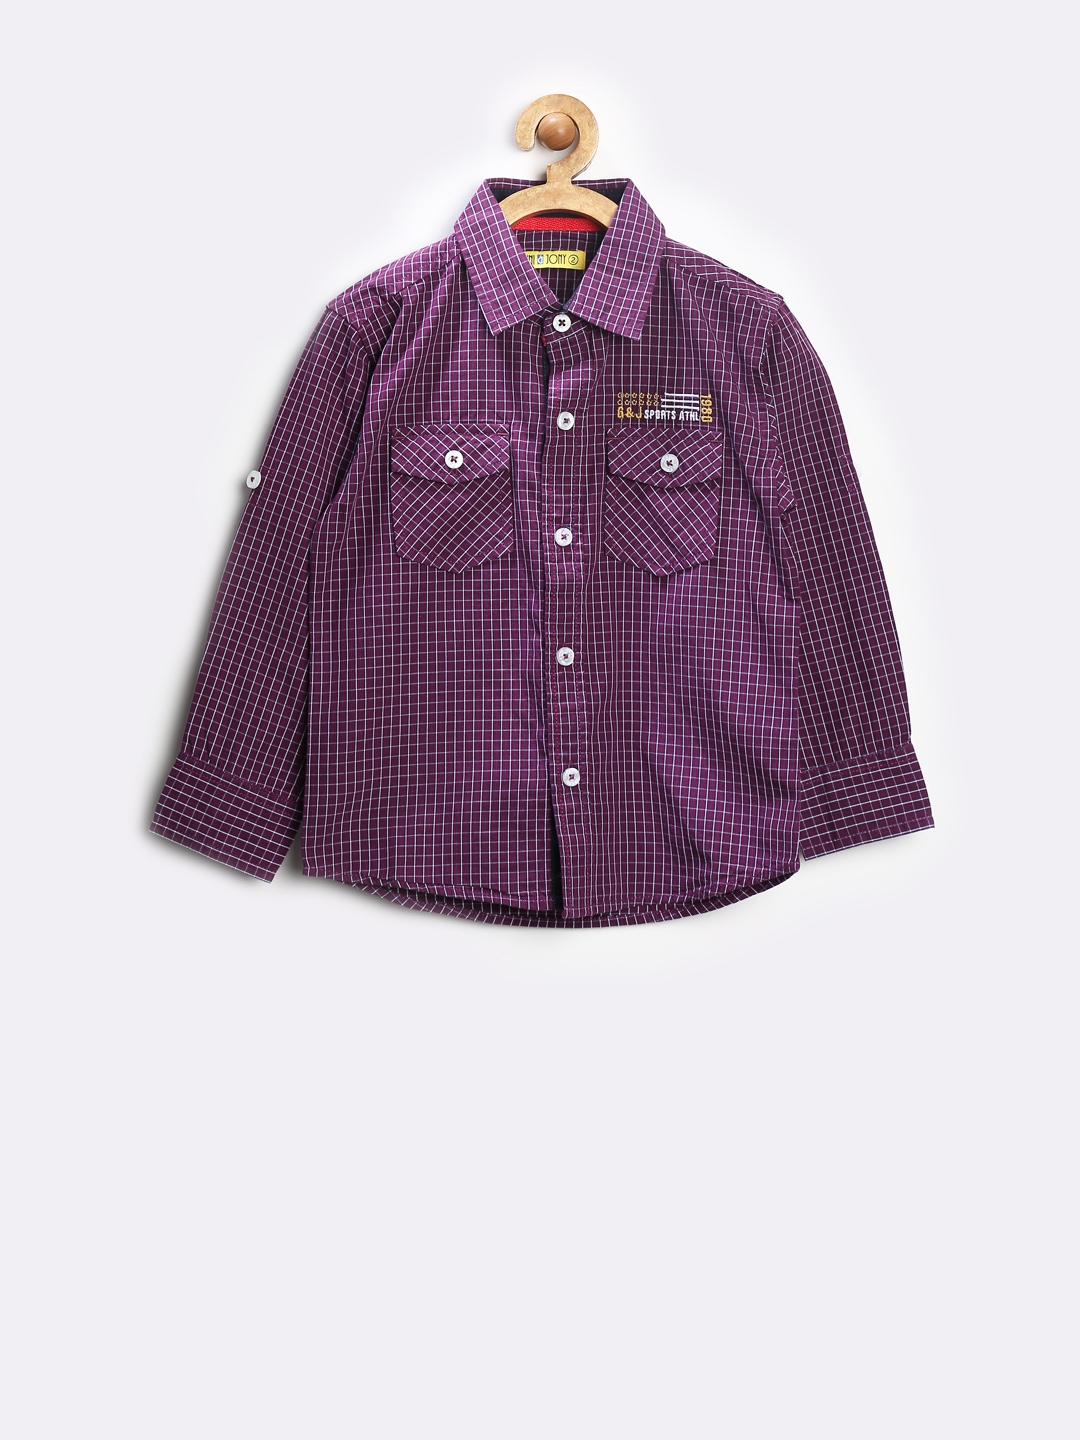 View Product Details More Shirts By Gini And Jony More